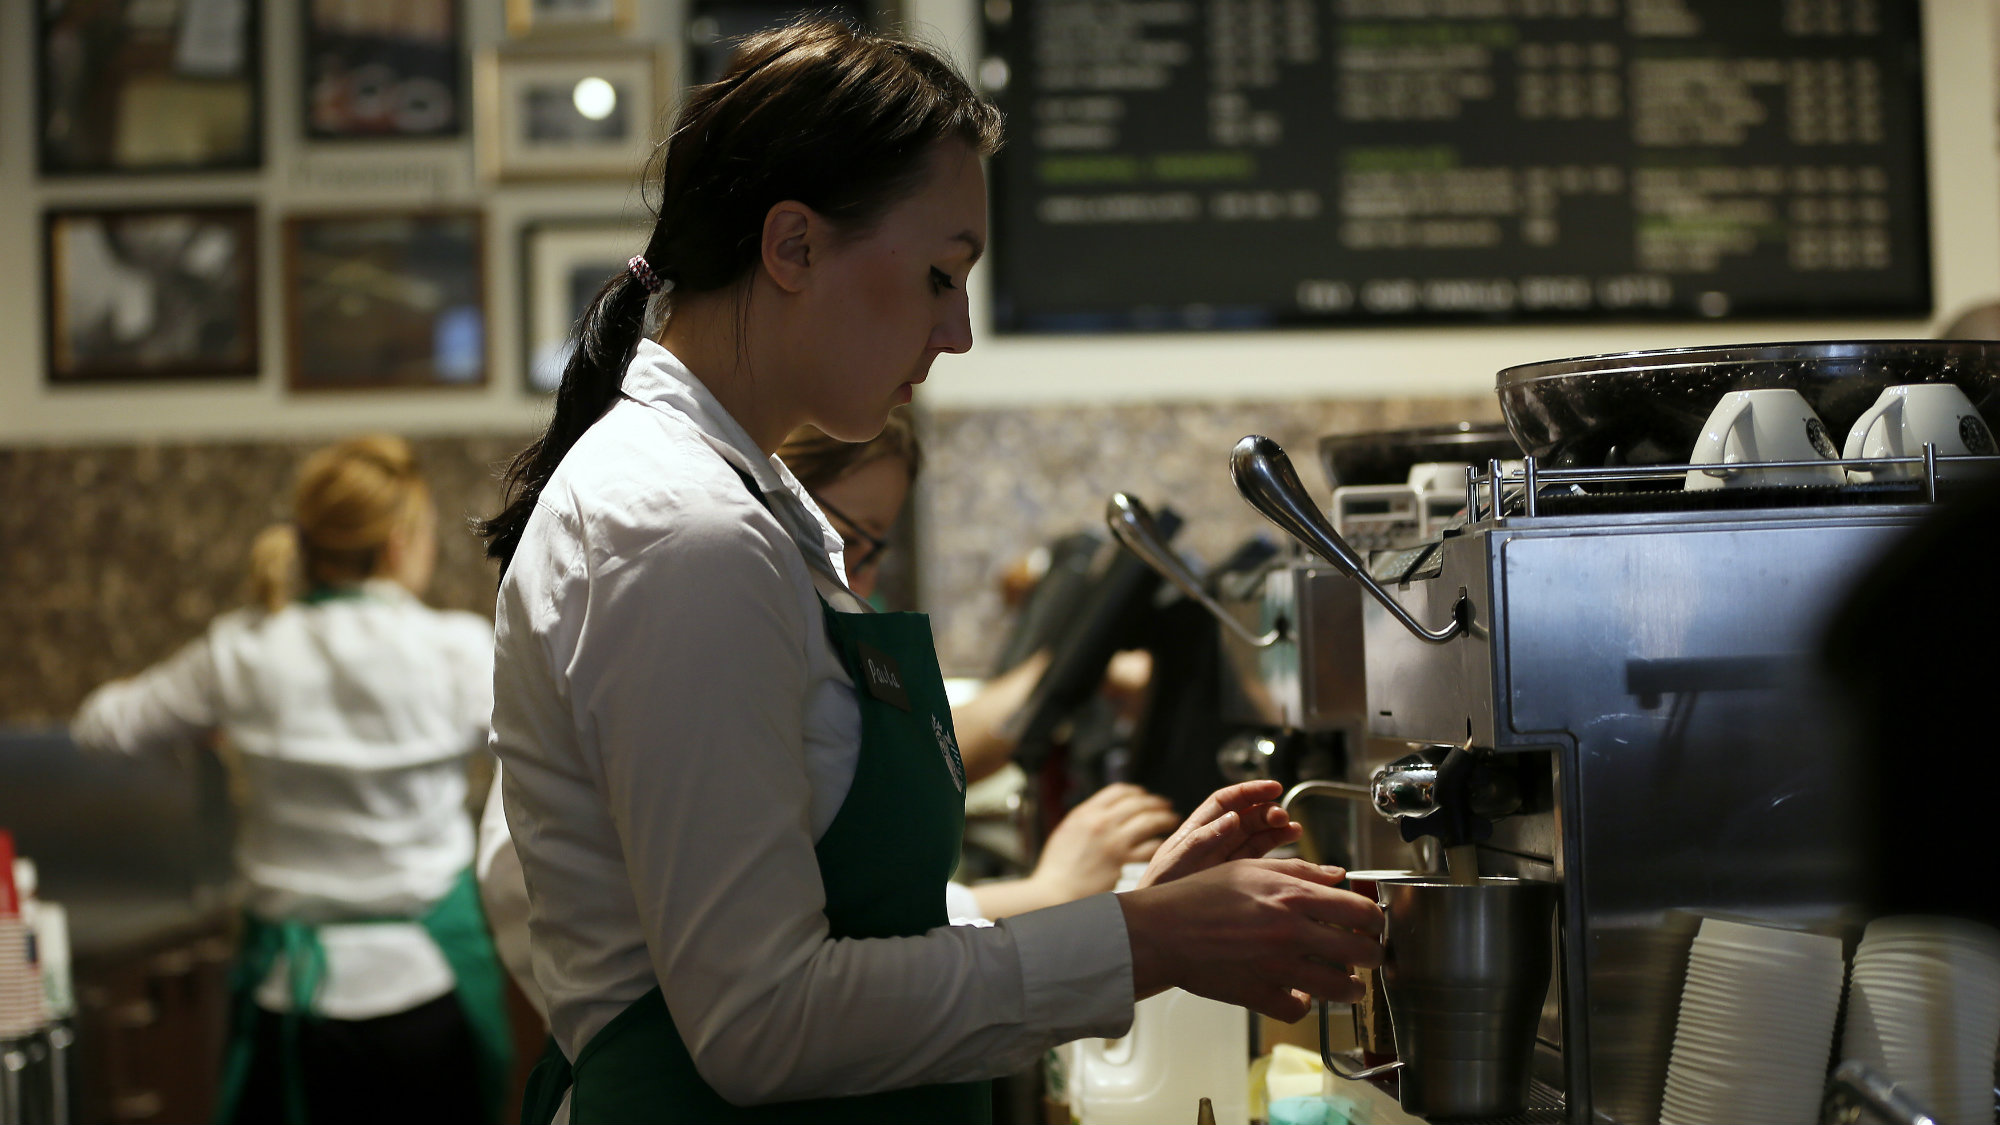 A young barista prepares a drink at a Starbucks.